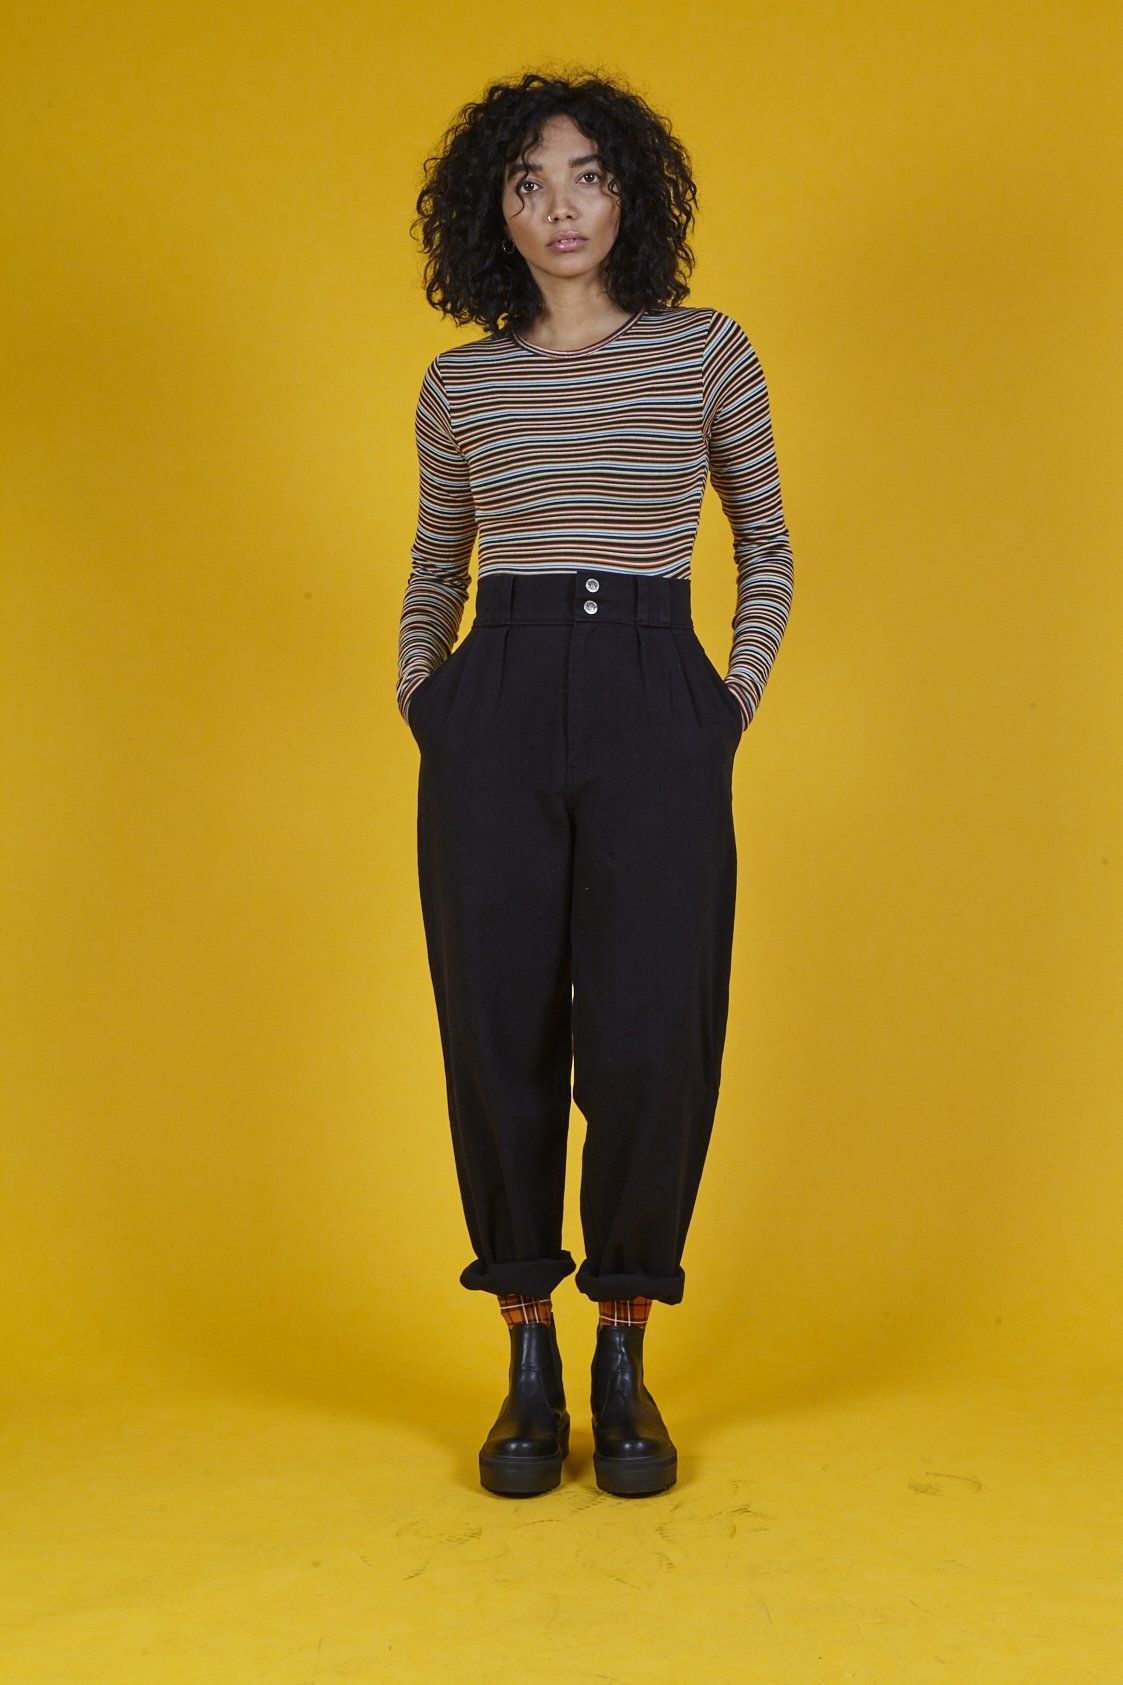 fbd1bcf61a6b6 Addison  High Waisted Organic Cotton Twill Jeans in Black   Yes ...